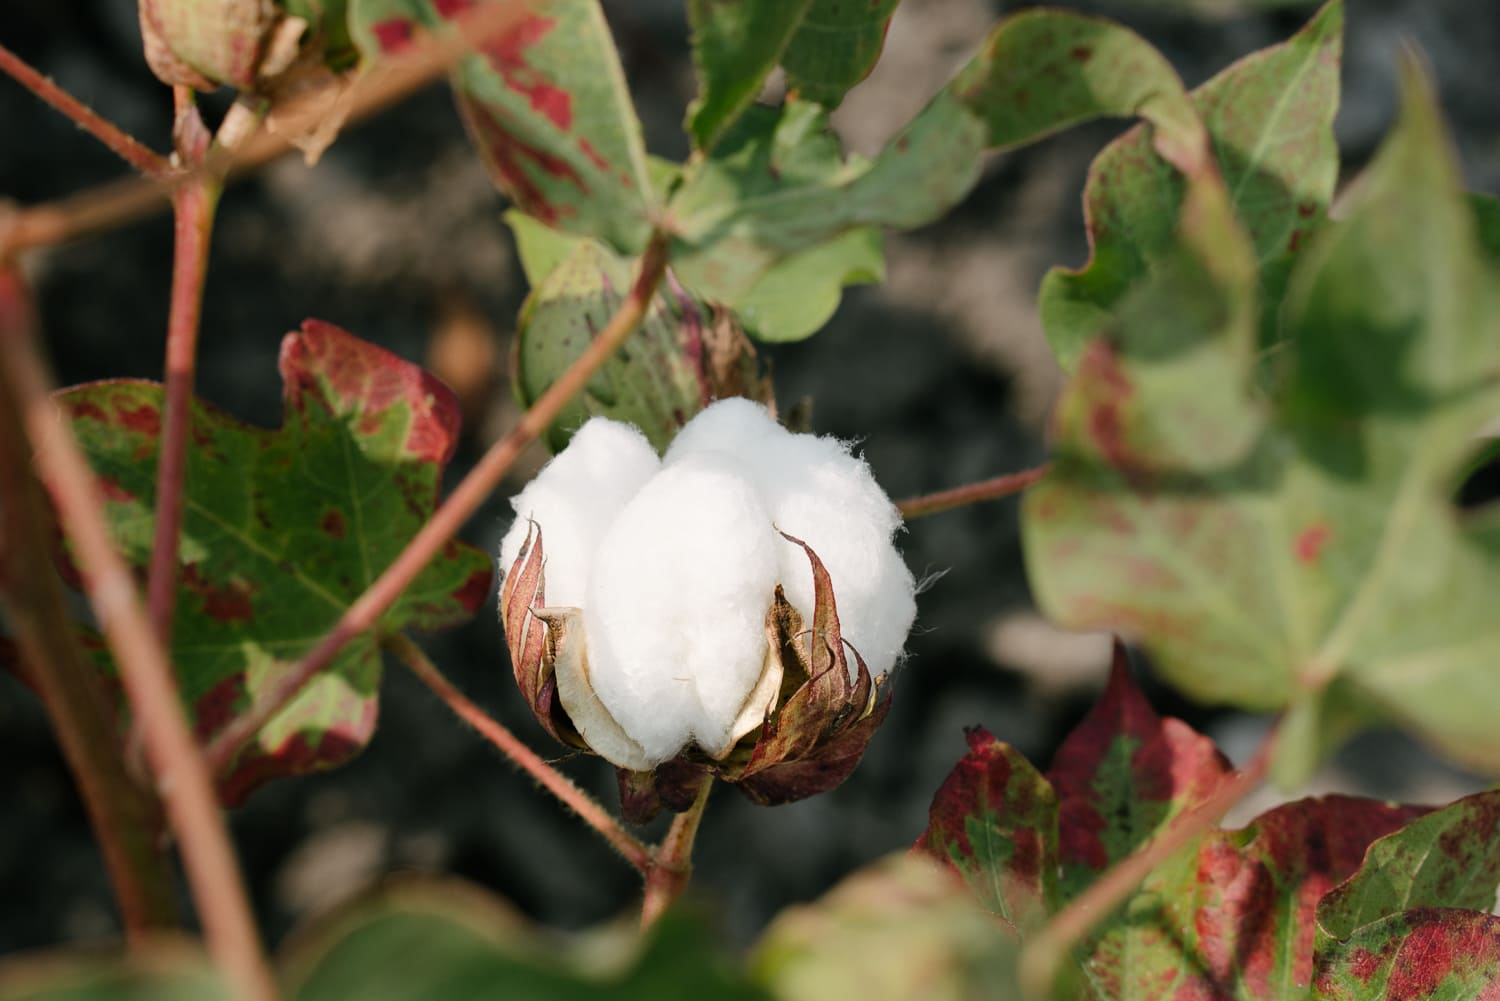 Mungo goes in search of organic cotton in Turkey